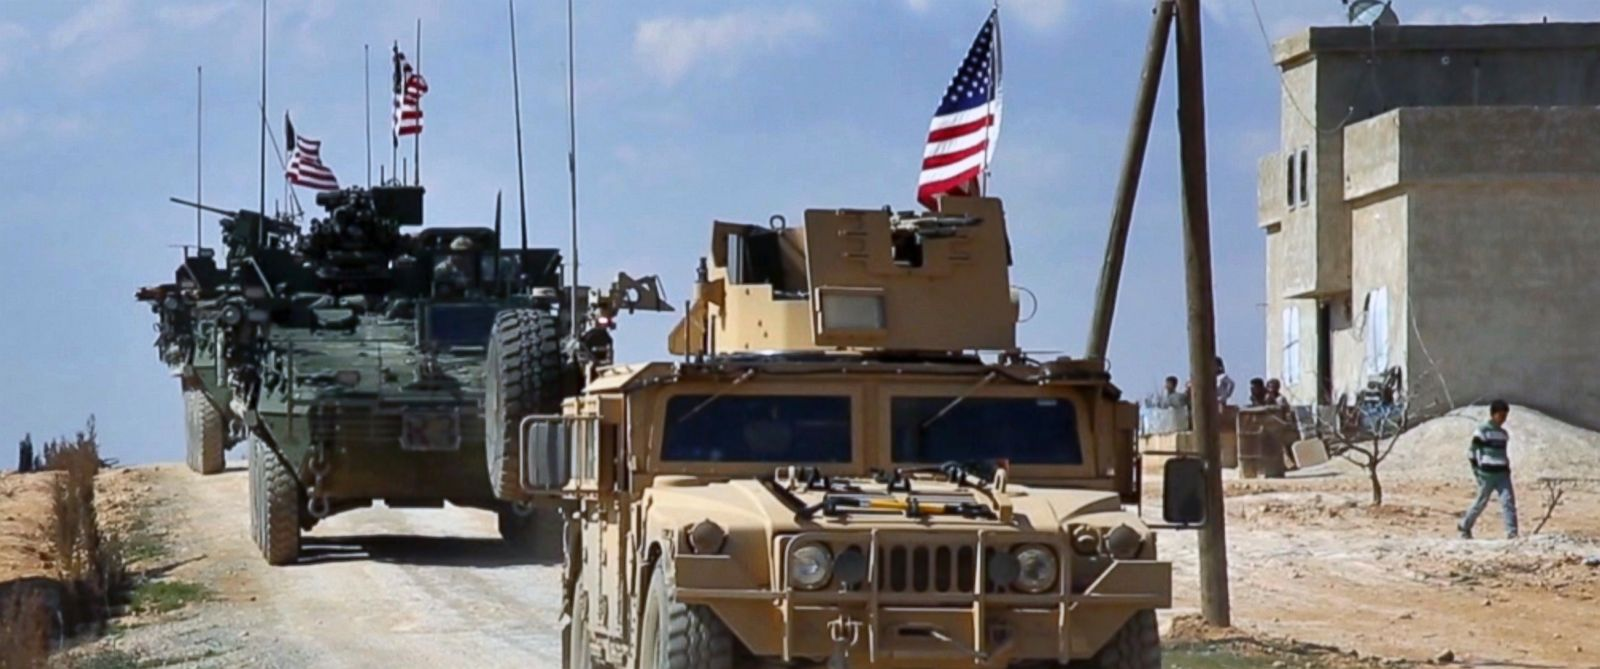 us army in syria